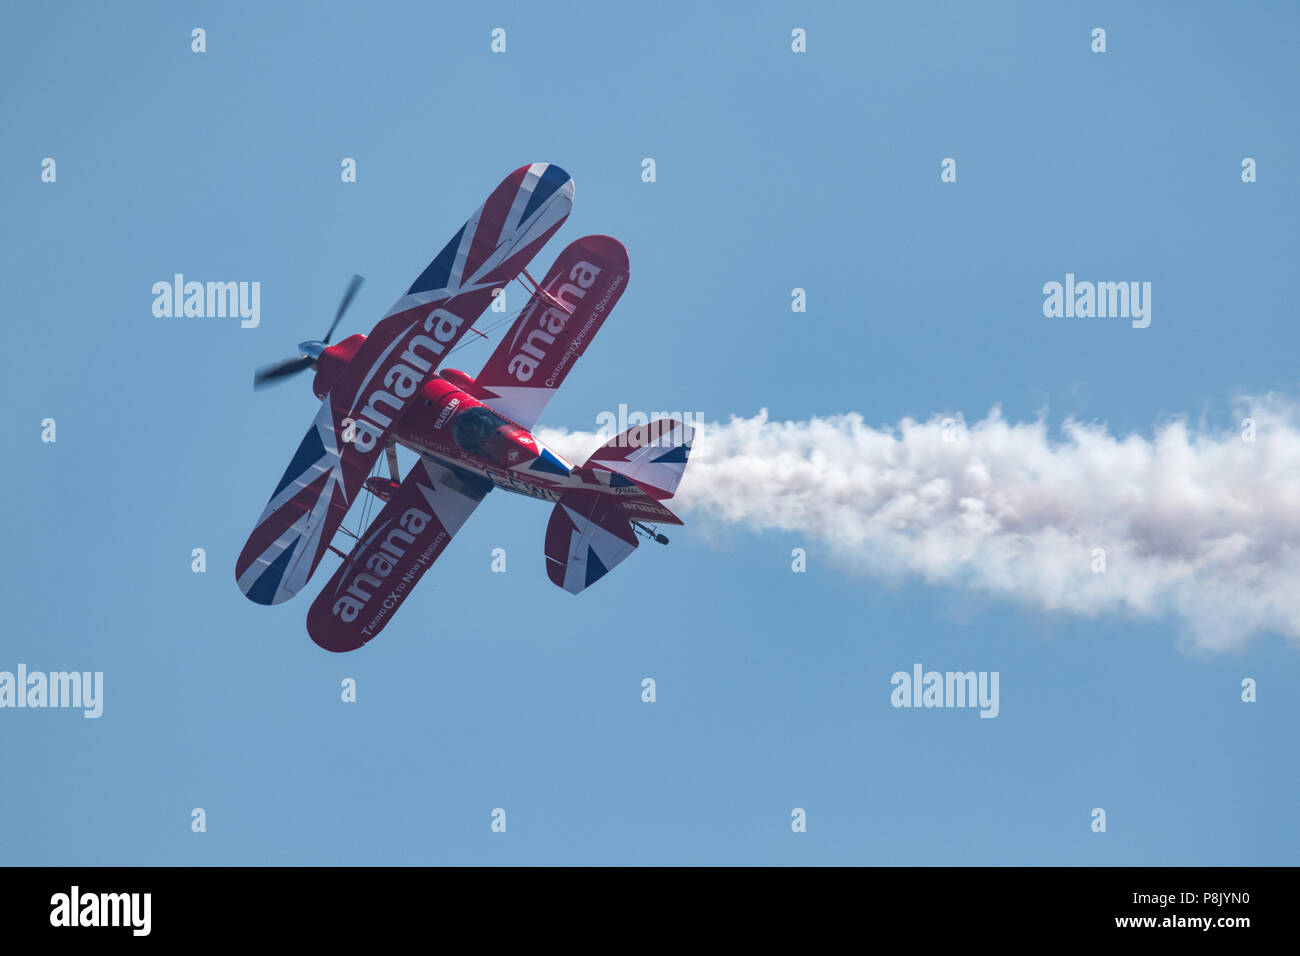 National Pitts Stock Photos & National Pitts Stock Images - Alamy